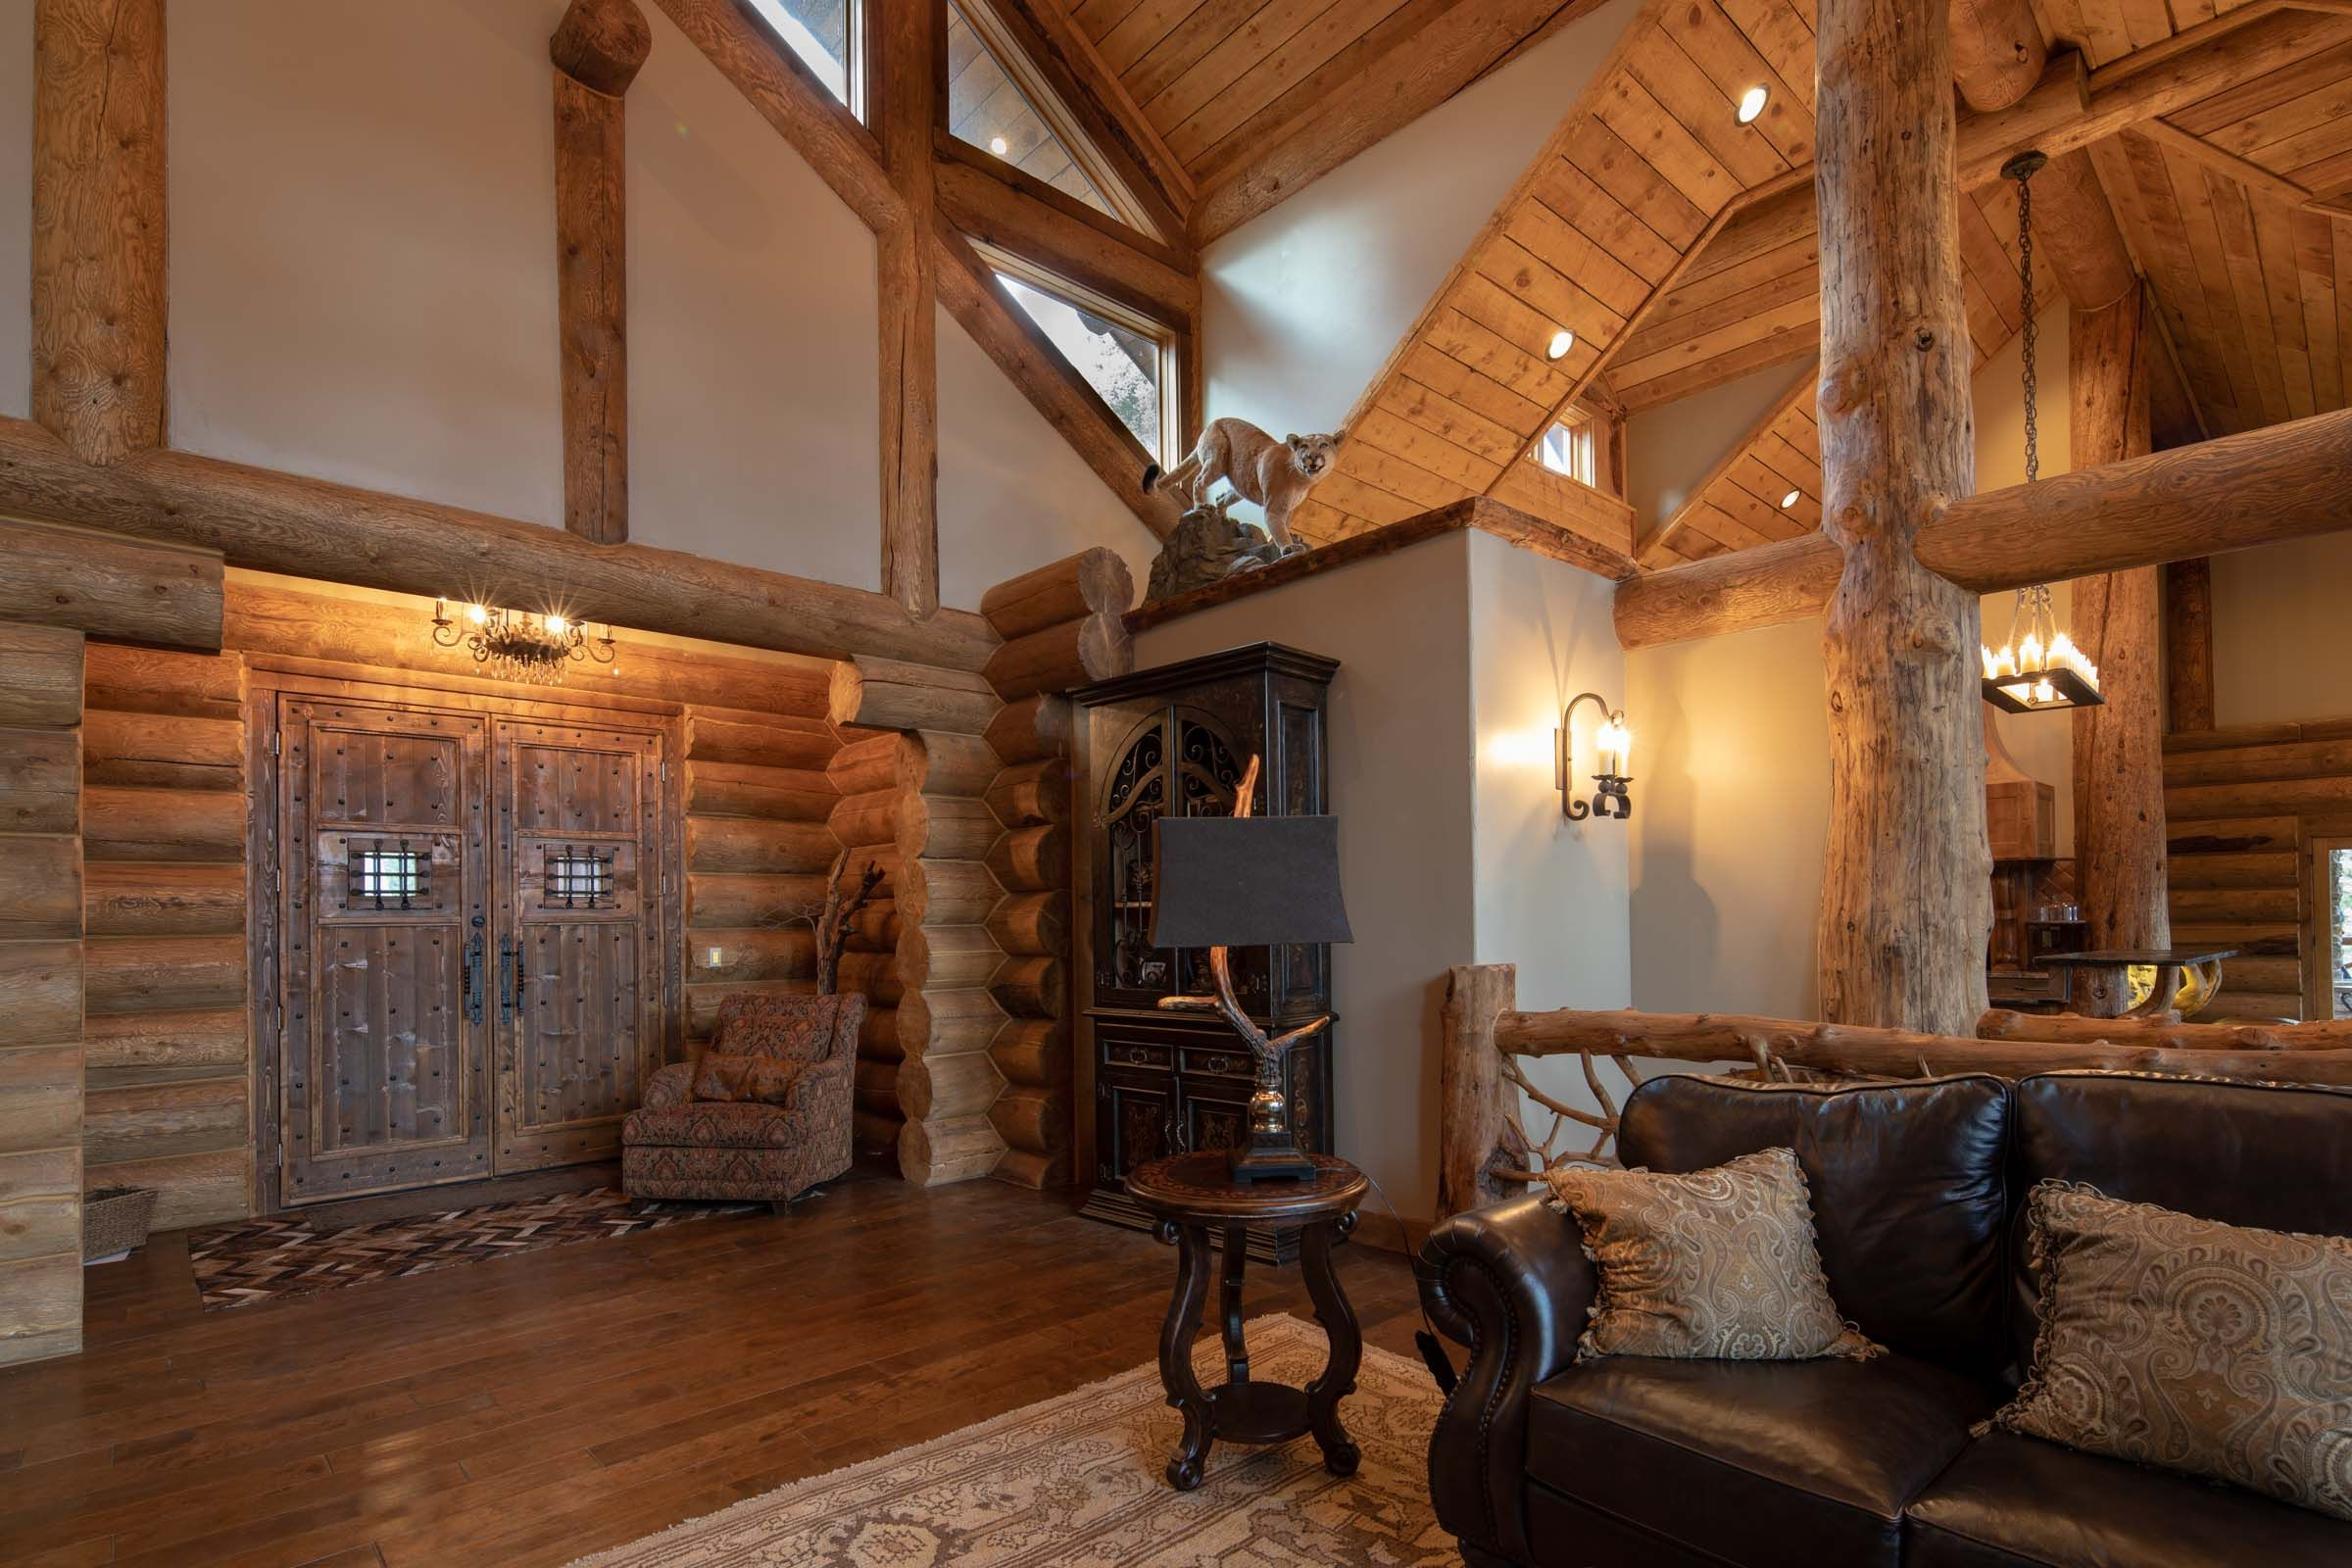 luxury mountain lodge for sale in angel fire nm back basin lodge rh pinterest com